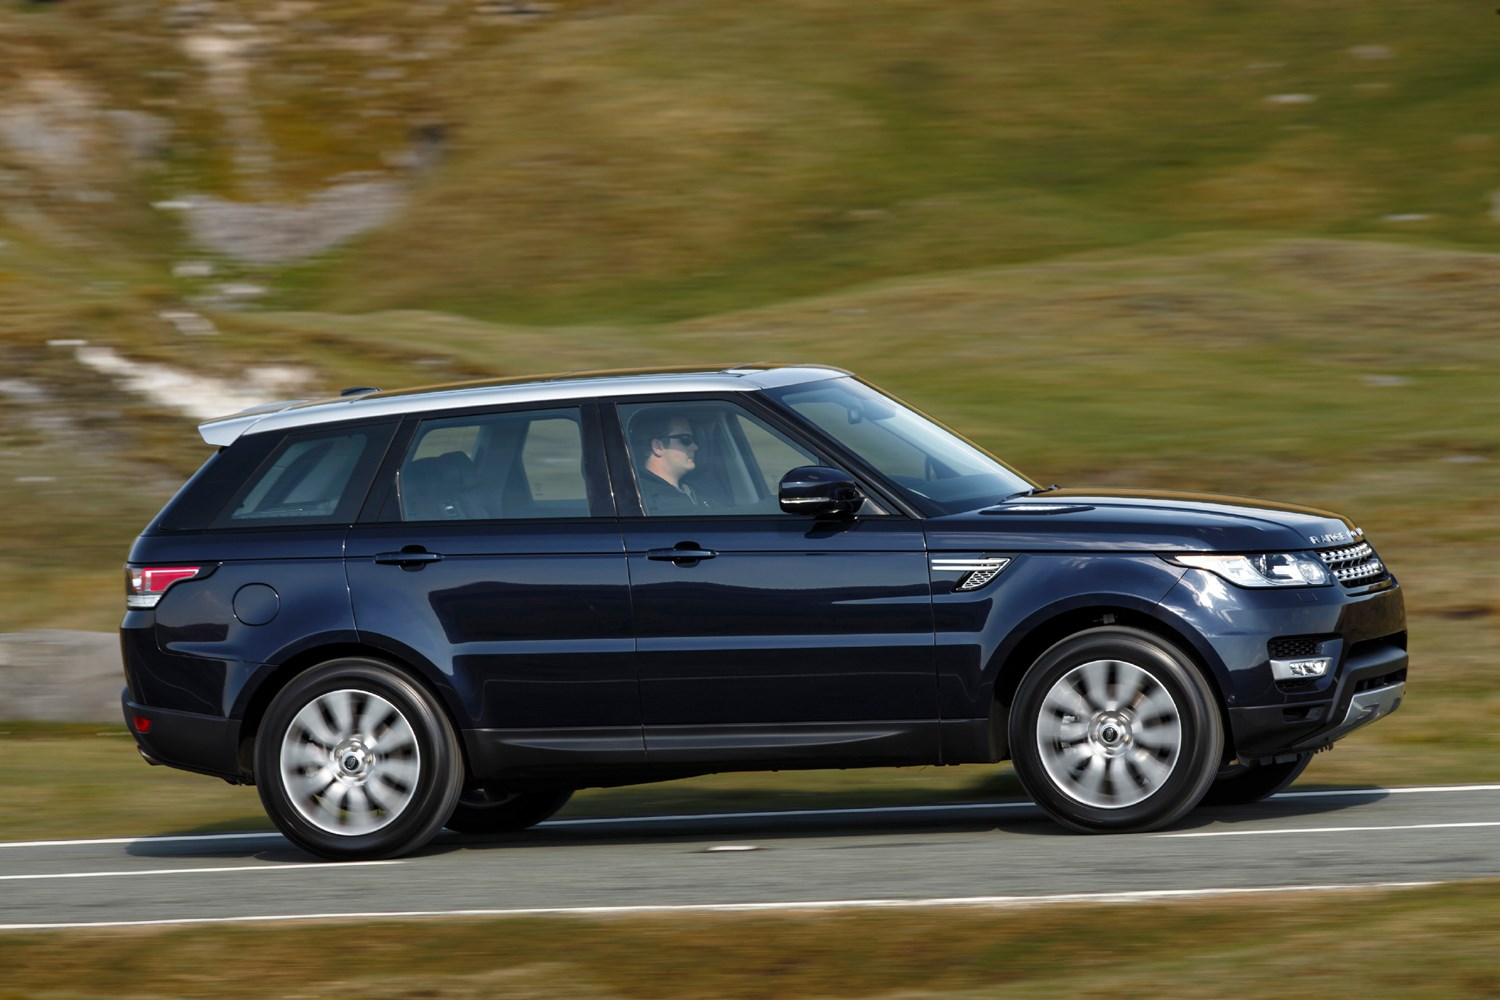 land rover discovery lease uk with Photos on Kia Sorento 2017 Review Limited Kia Sorento 2017 Review Philippines further Alltech Hartpury Equine Student Conference likewise MA6j 8128 also Volvo Xc60 Faults together with Puma Racing The Puma Racing Boots Of Puma Racing Suits Sale.